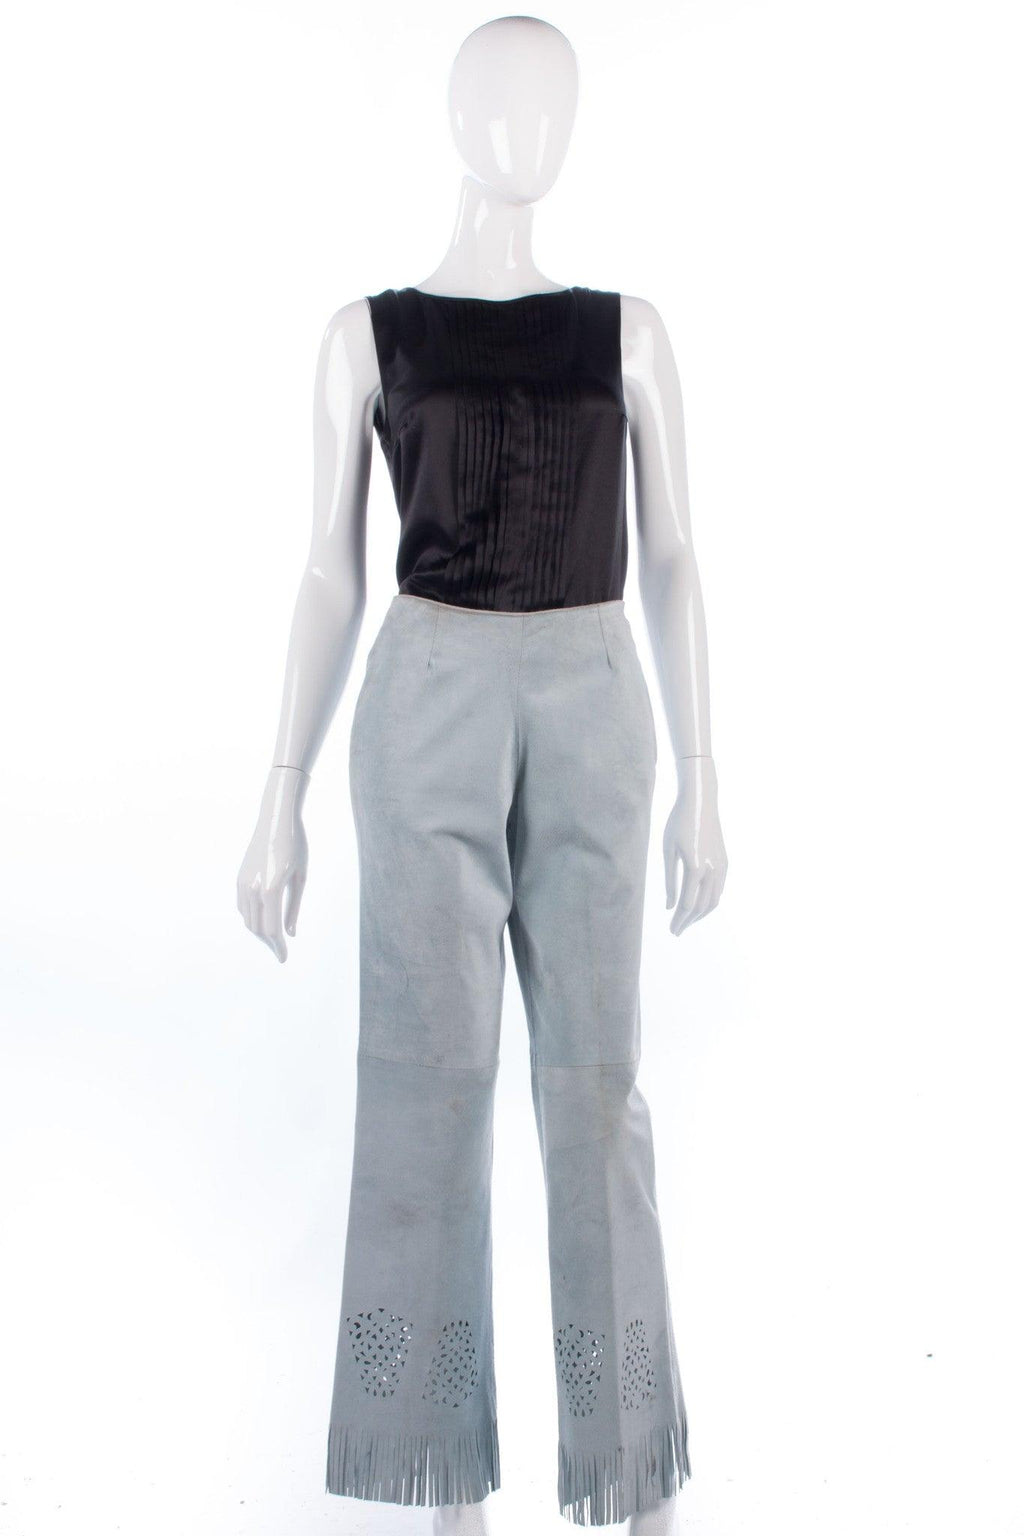 Pale blue designer suede fringed trousers, made in Italy. size 8